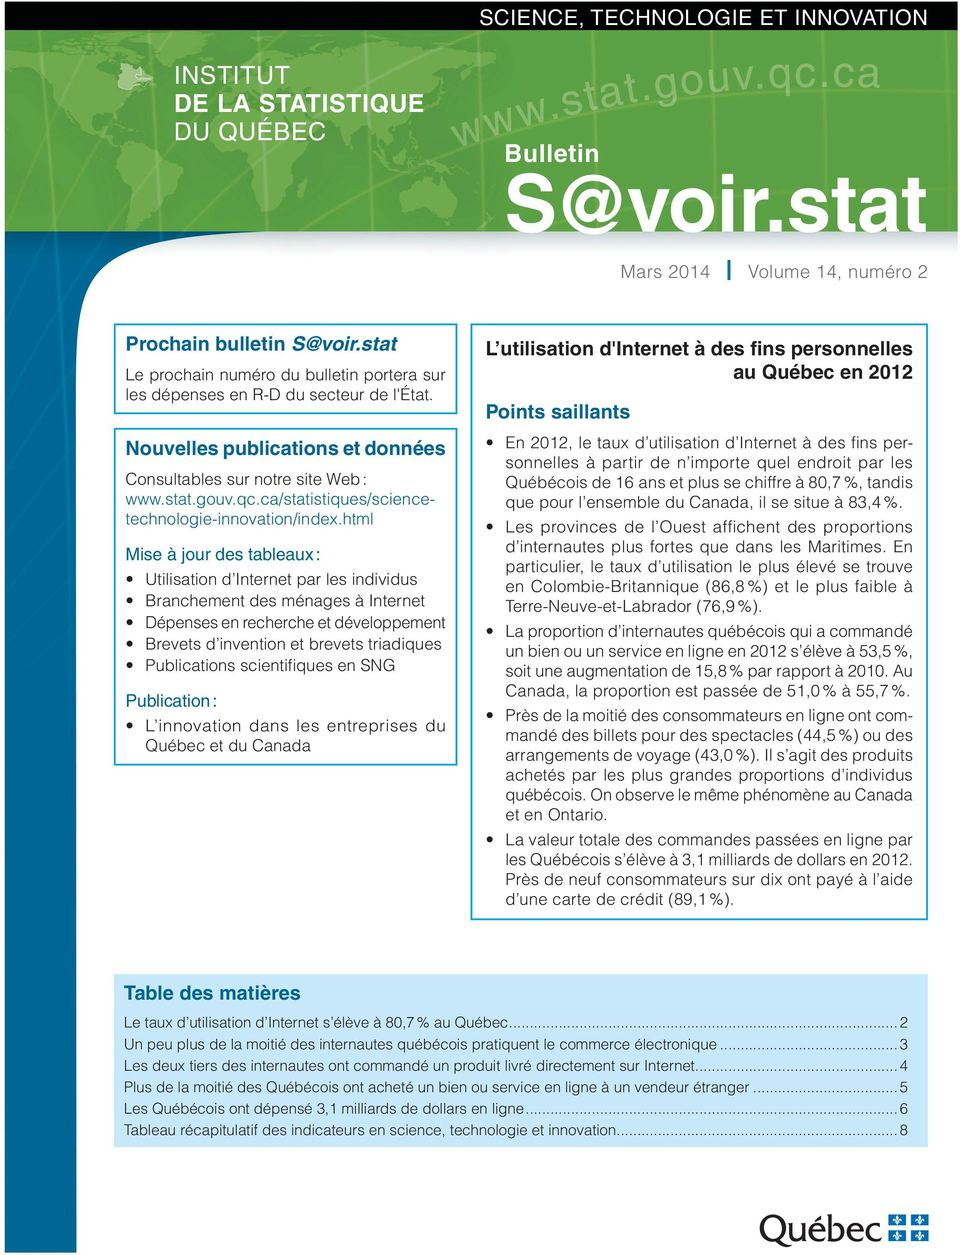 ca/statistiques/sciencetechnologie-innovation/index.